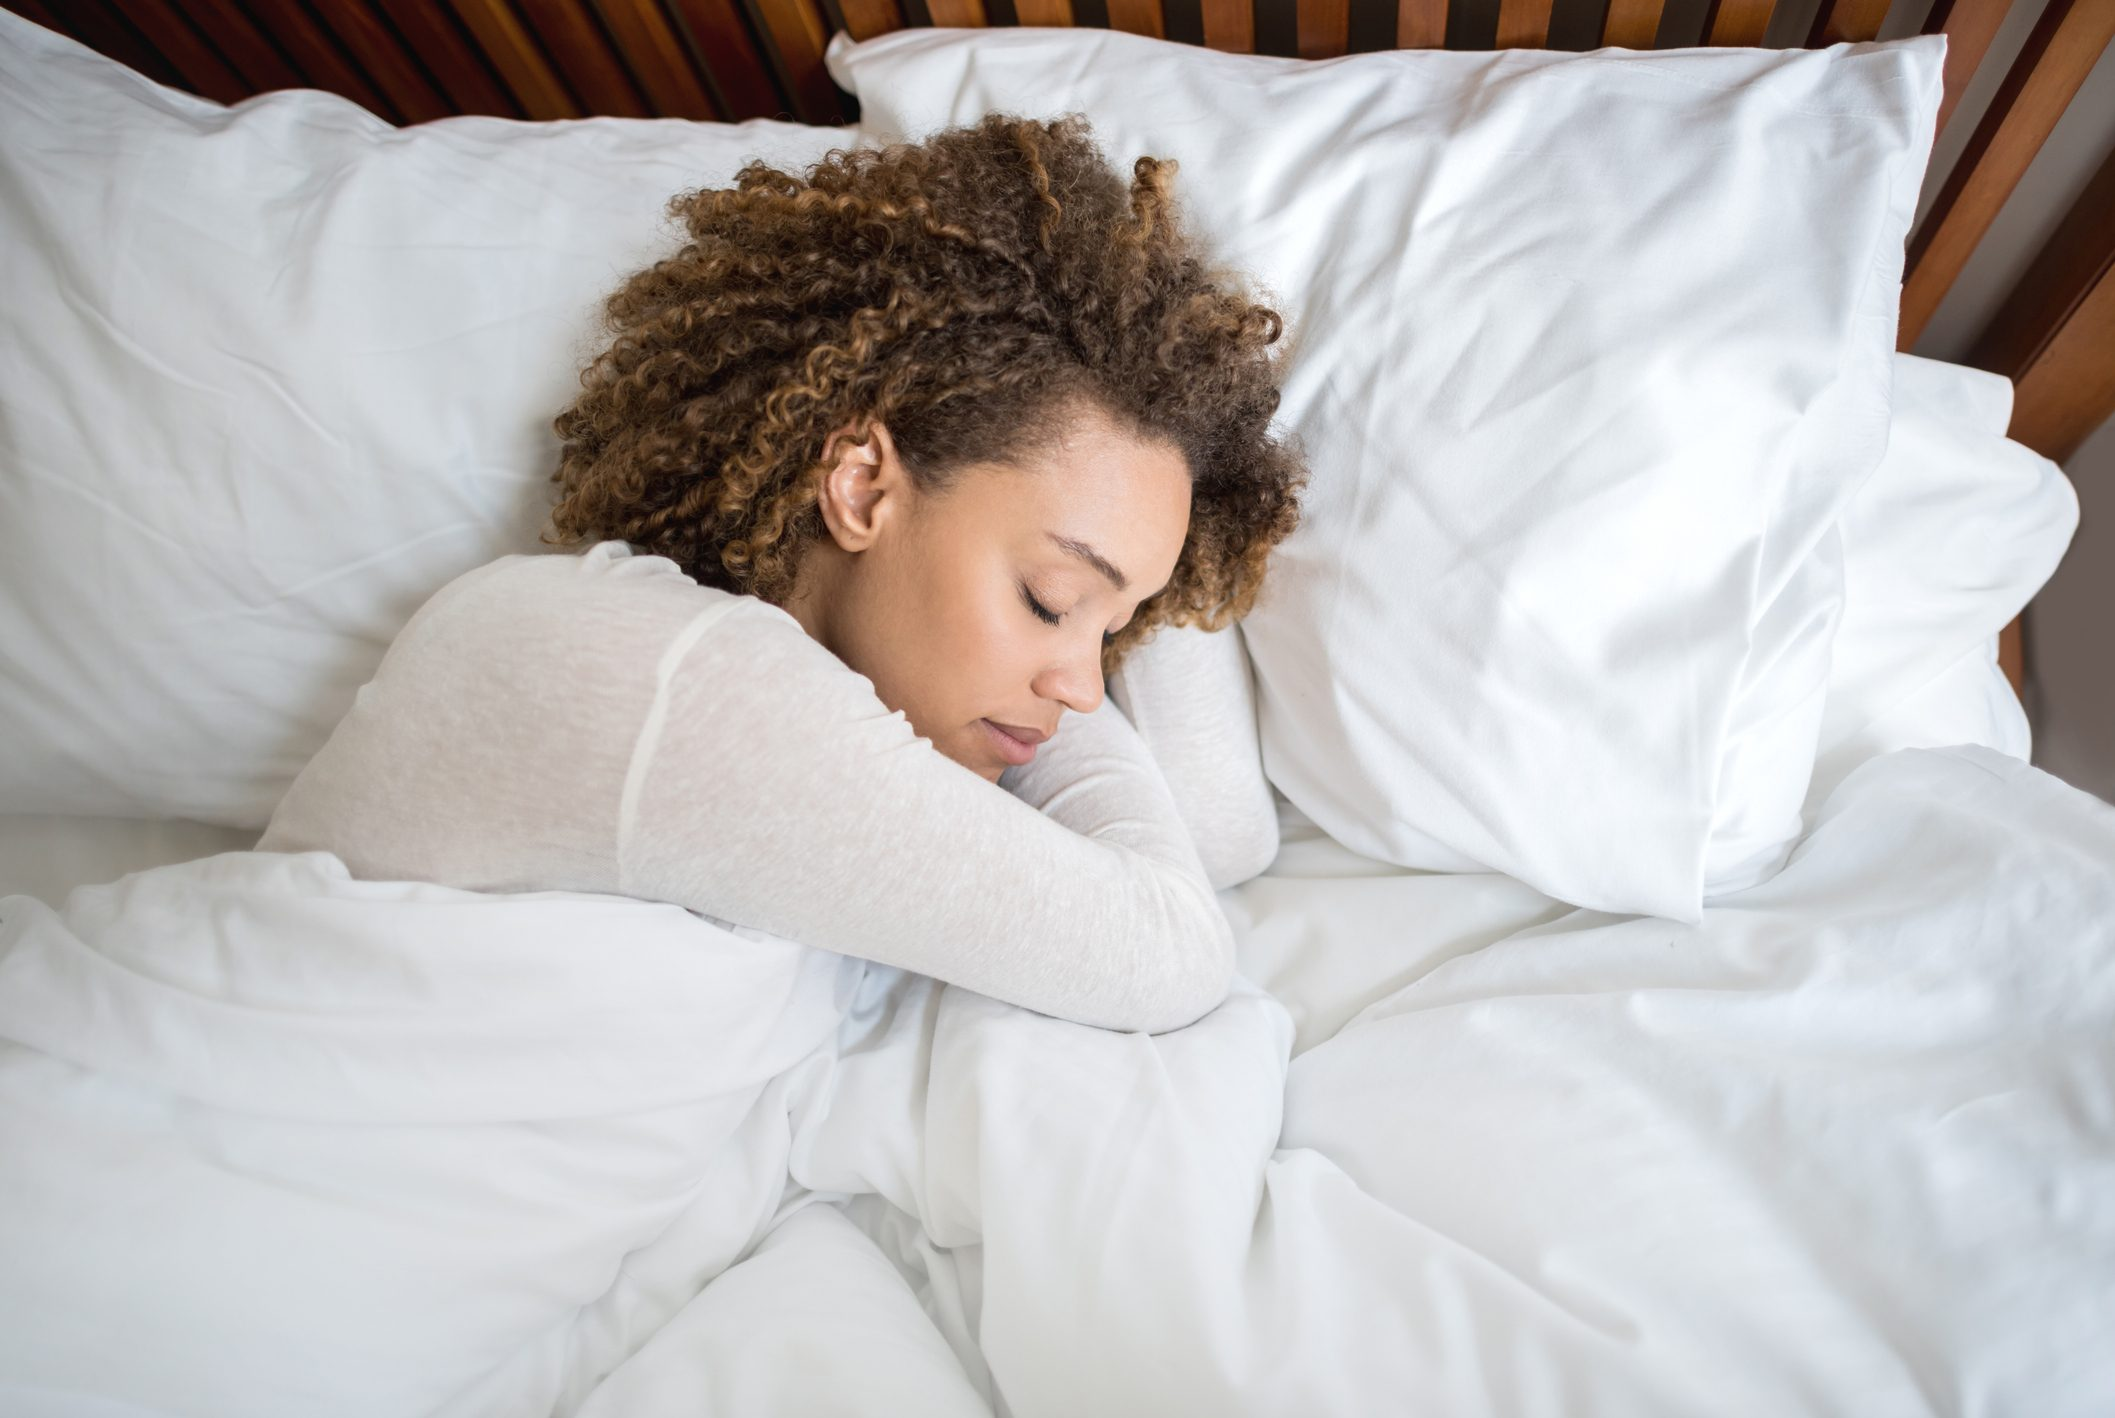 African American woman sleeping in bed